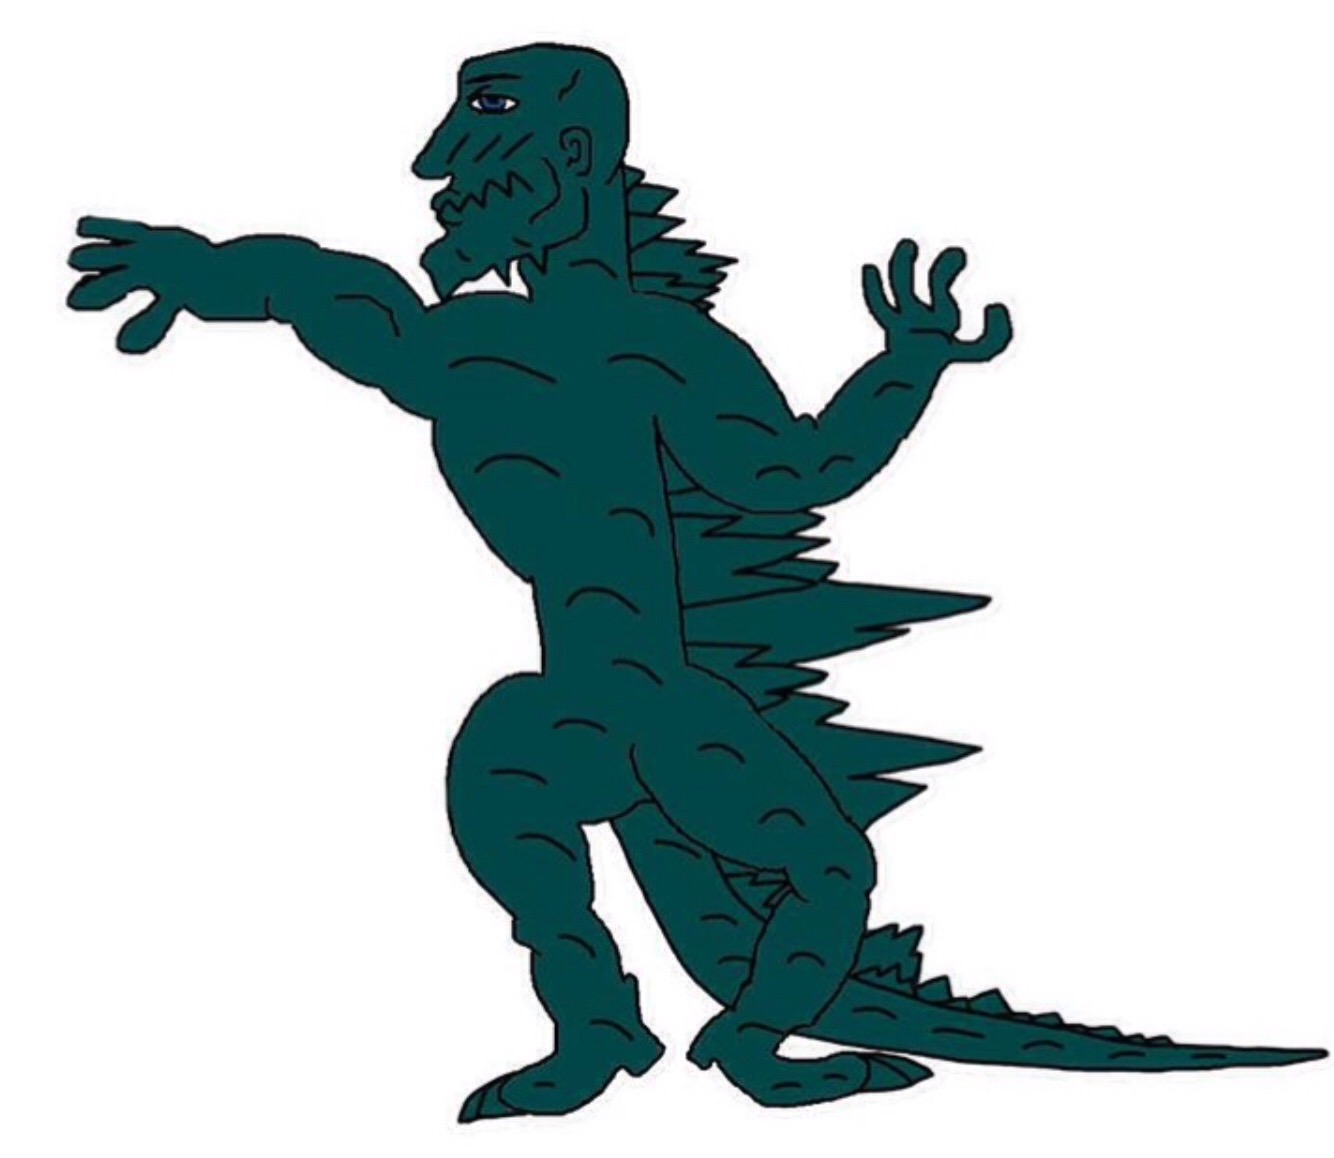 gorilla clipart at getdrawings com free for personal use gorilla rh getdrawings com godzilla clipart black and white godzilla clipart